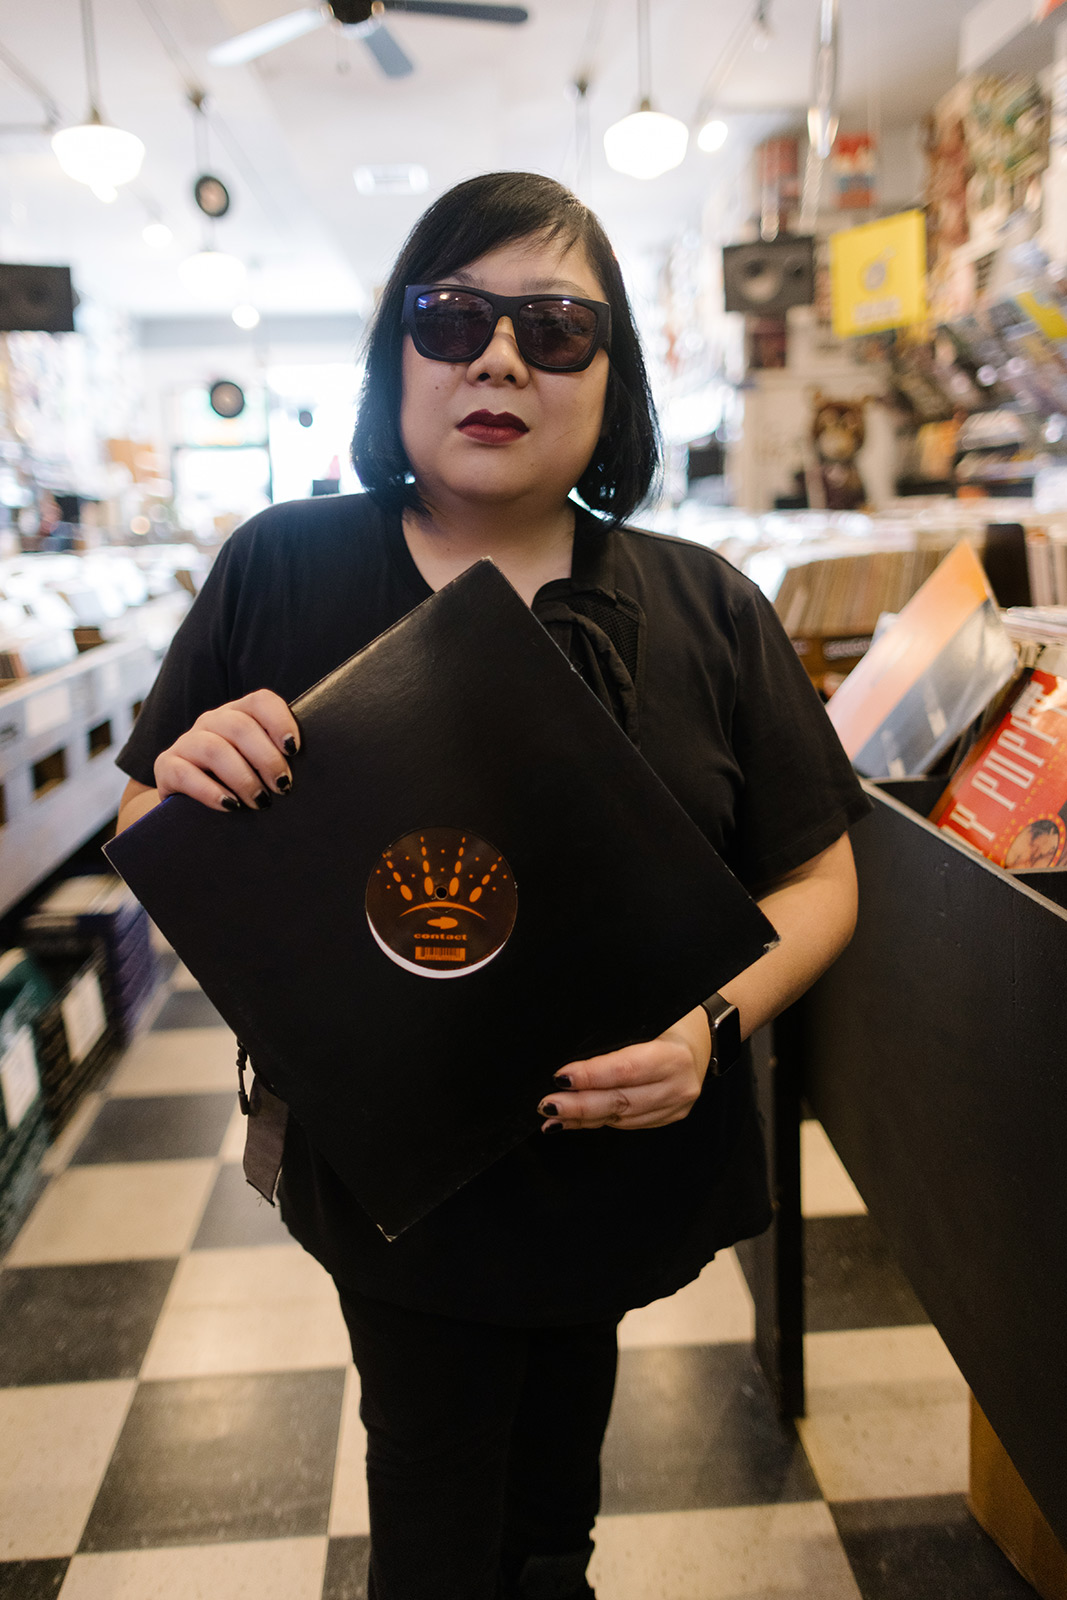 Hiroko Yamamura selects 5 records that defined her outsider sound